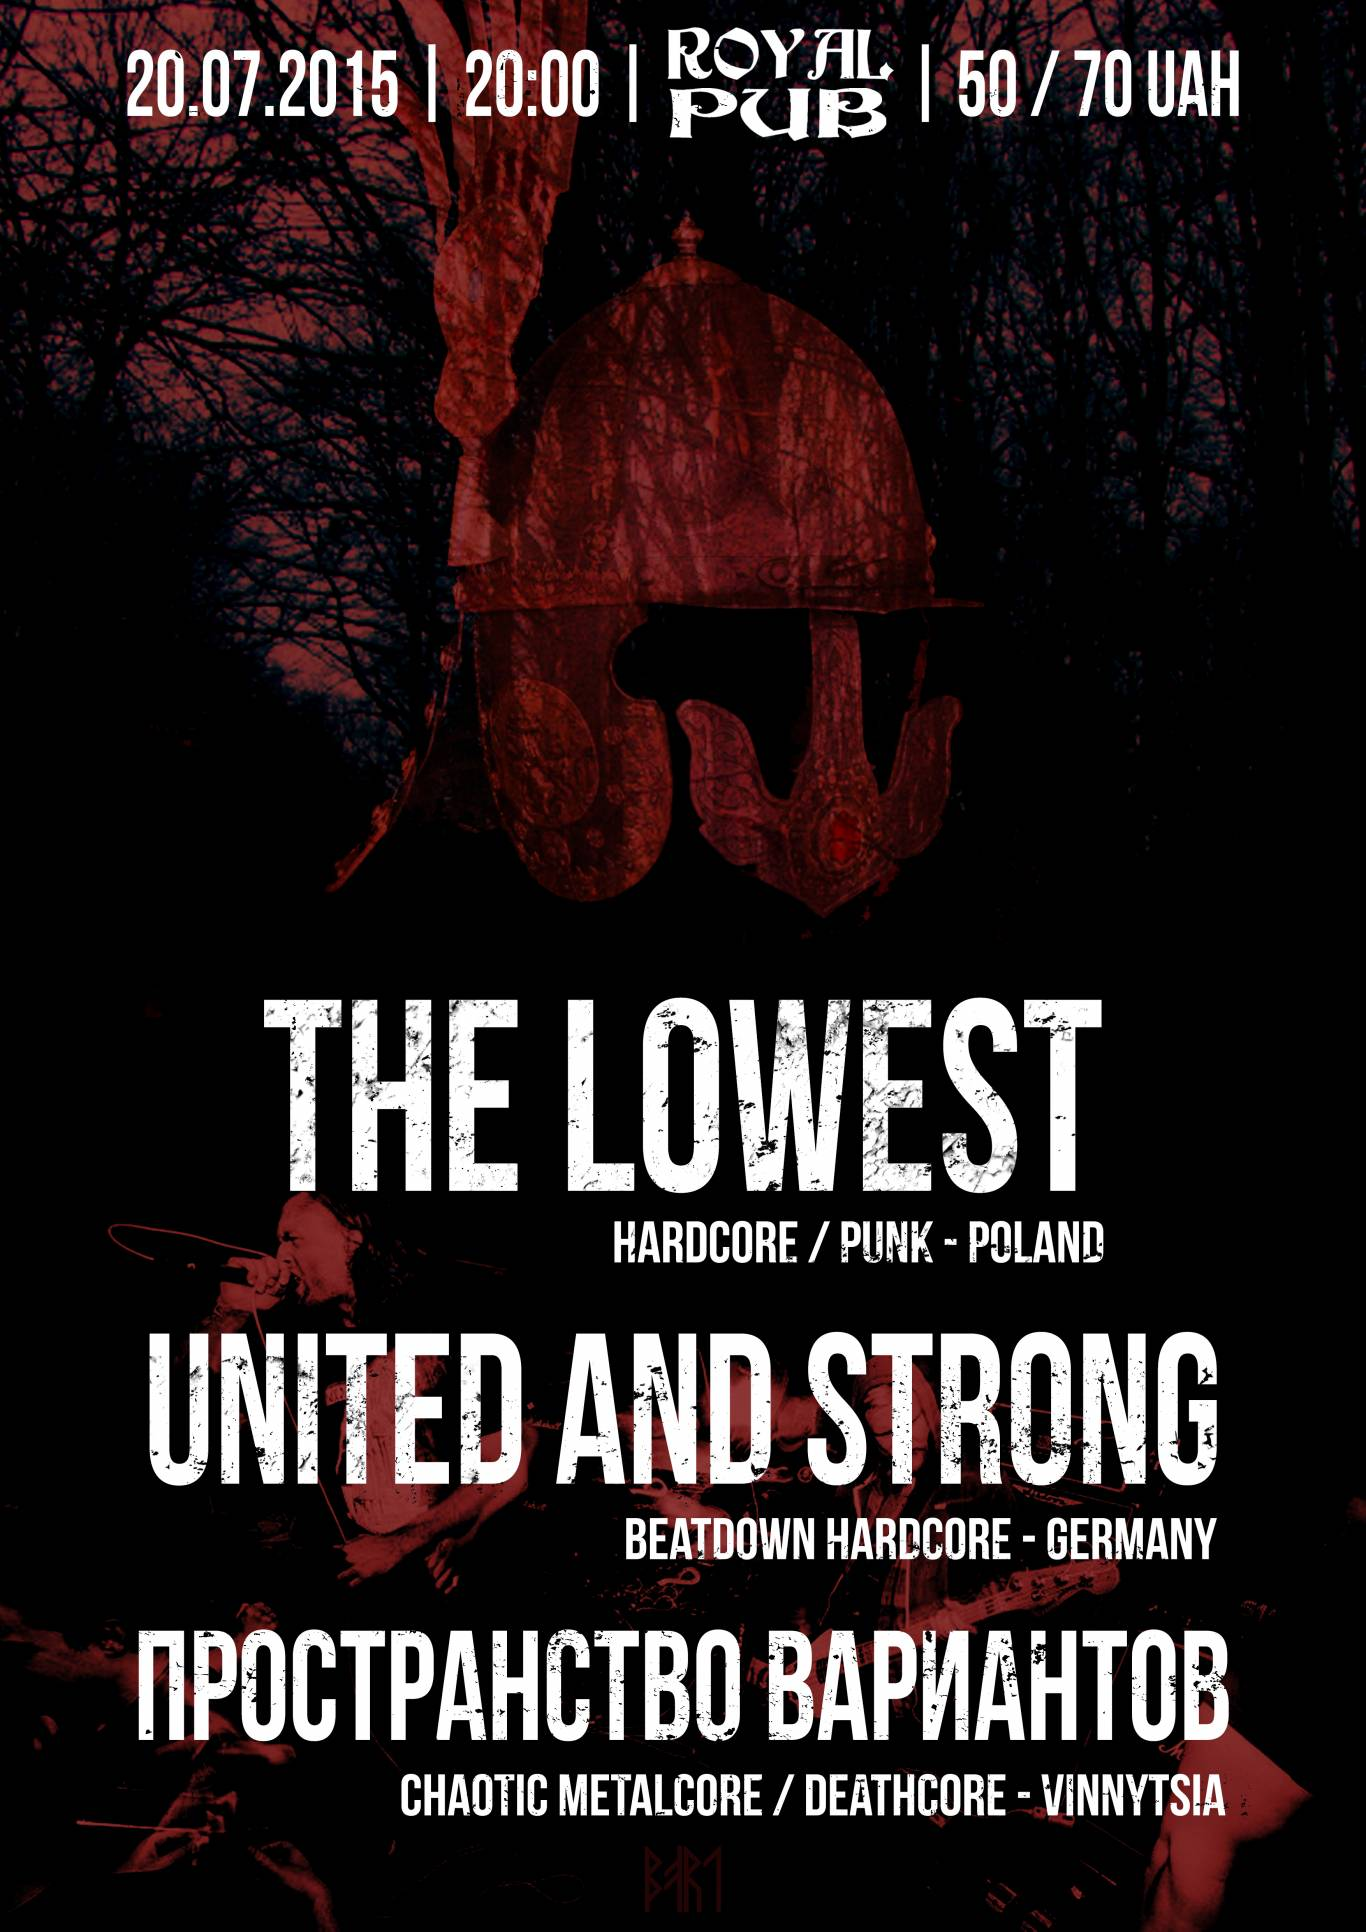 The Lowest (Польша) + United and Strong (Германия) в Виннице